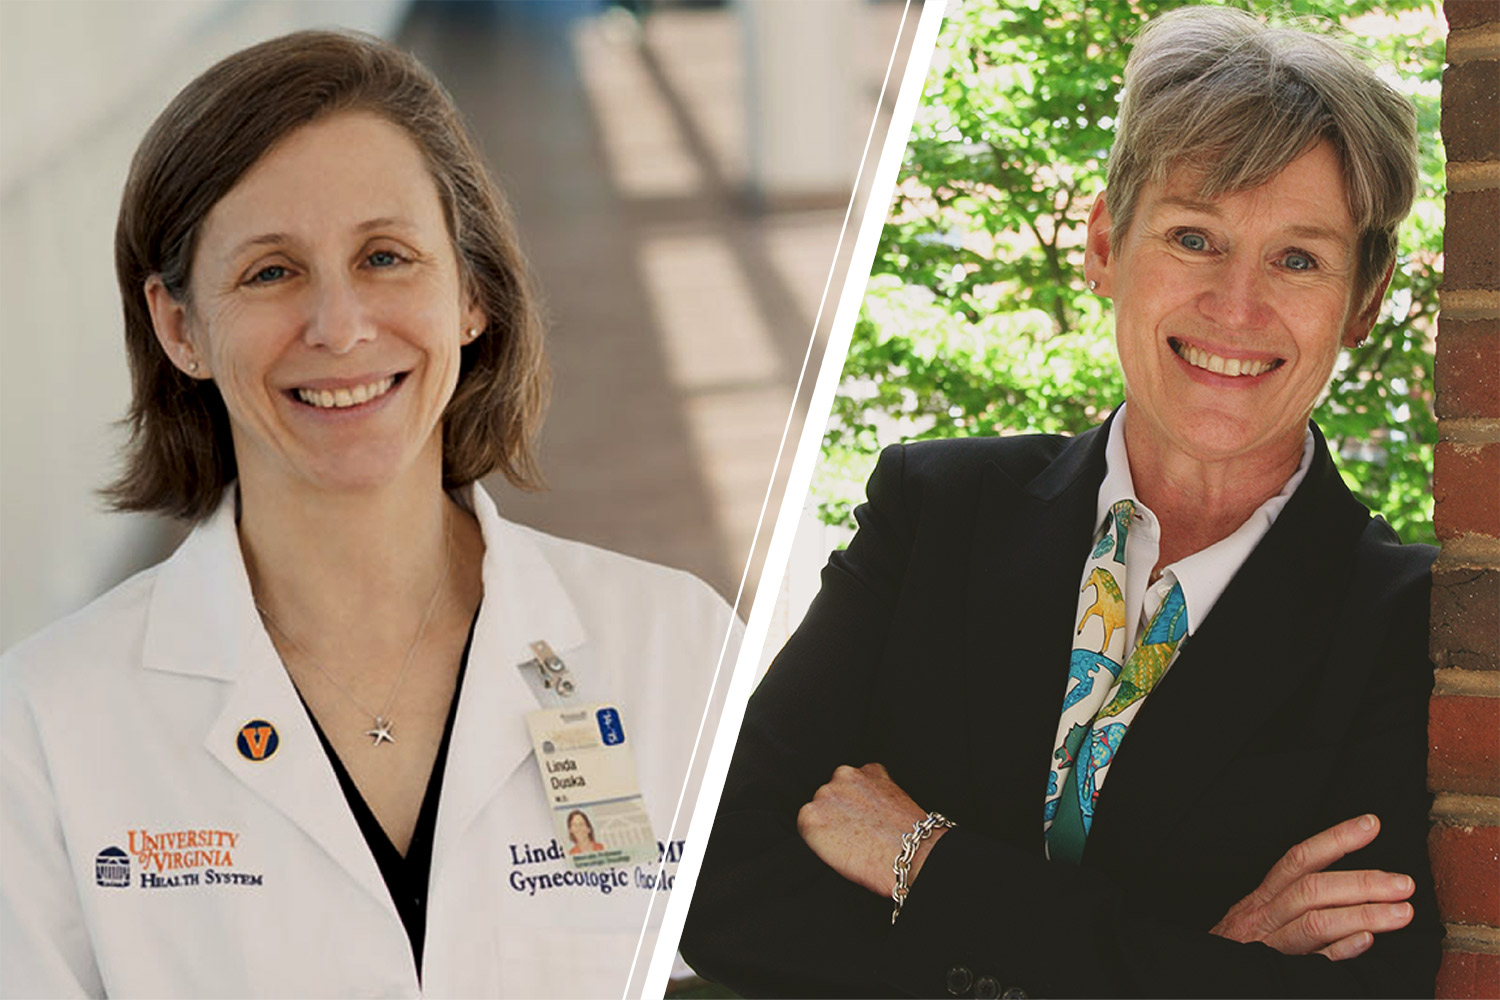 Dr. Linda Duska, left, and Dr. Susan Pollart were selected to a program that helps prepare women for leadership roles in academic medicine.